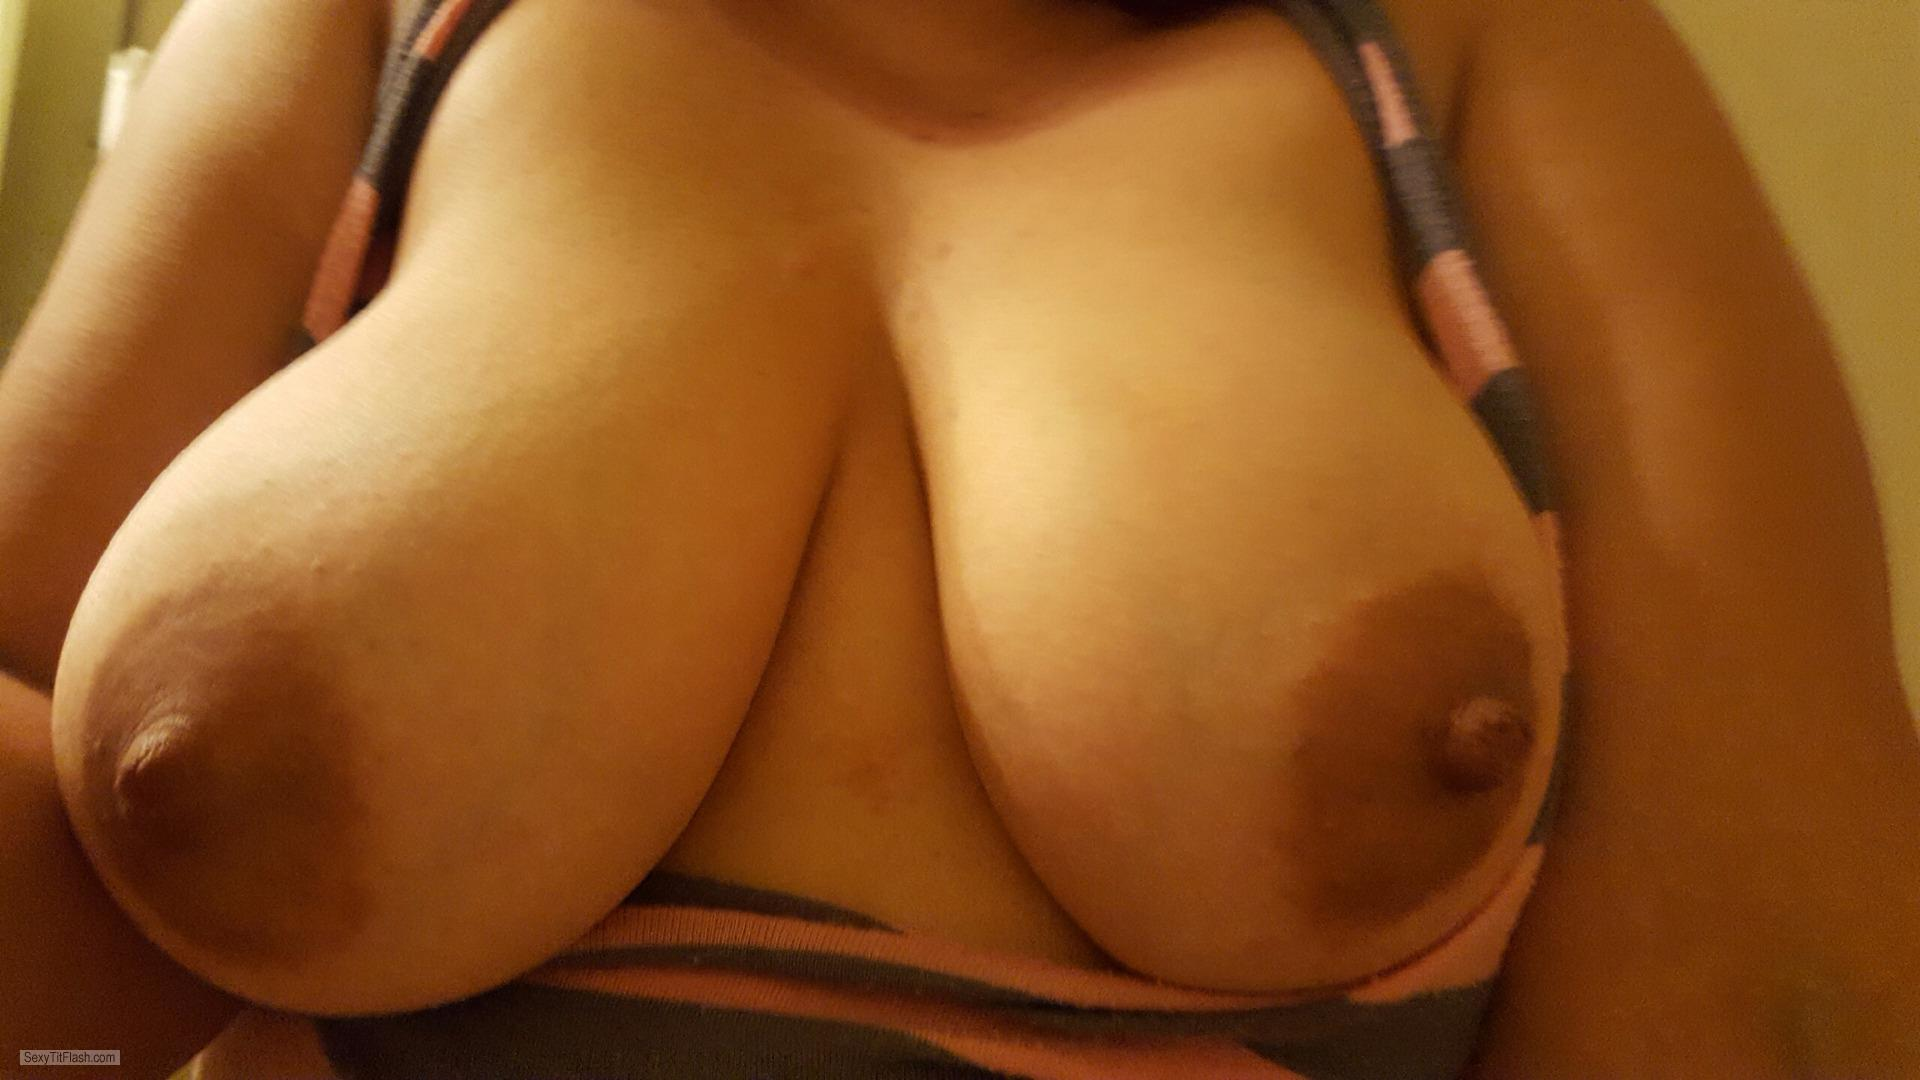 Tit Flash: Wife's Big Tits (Selfie) - Bako from United States